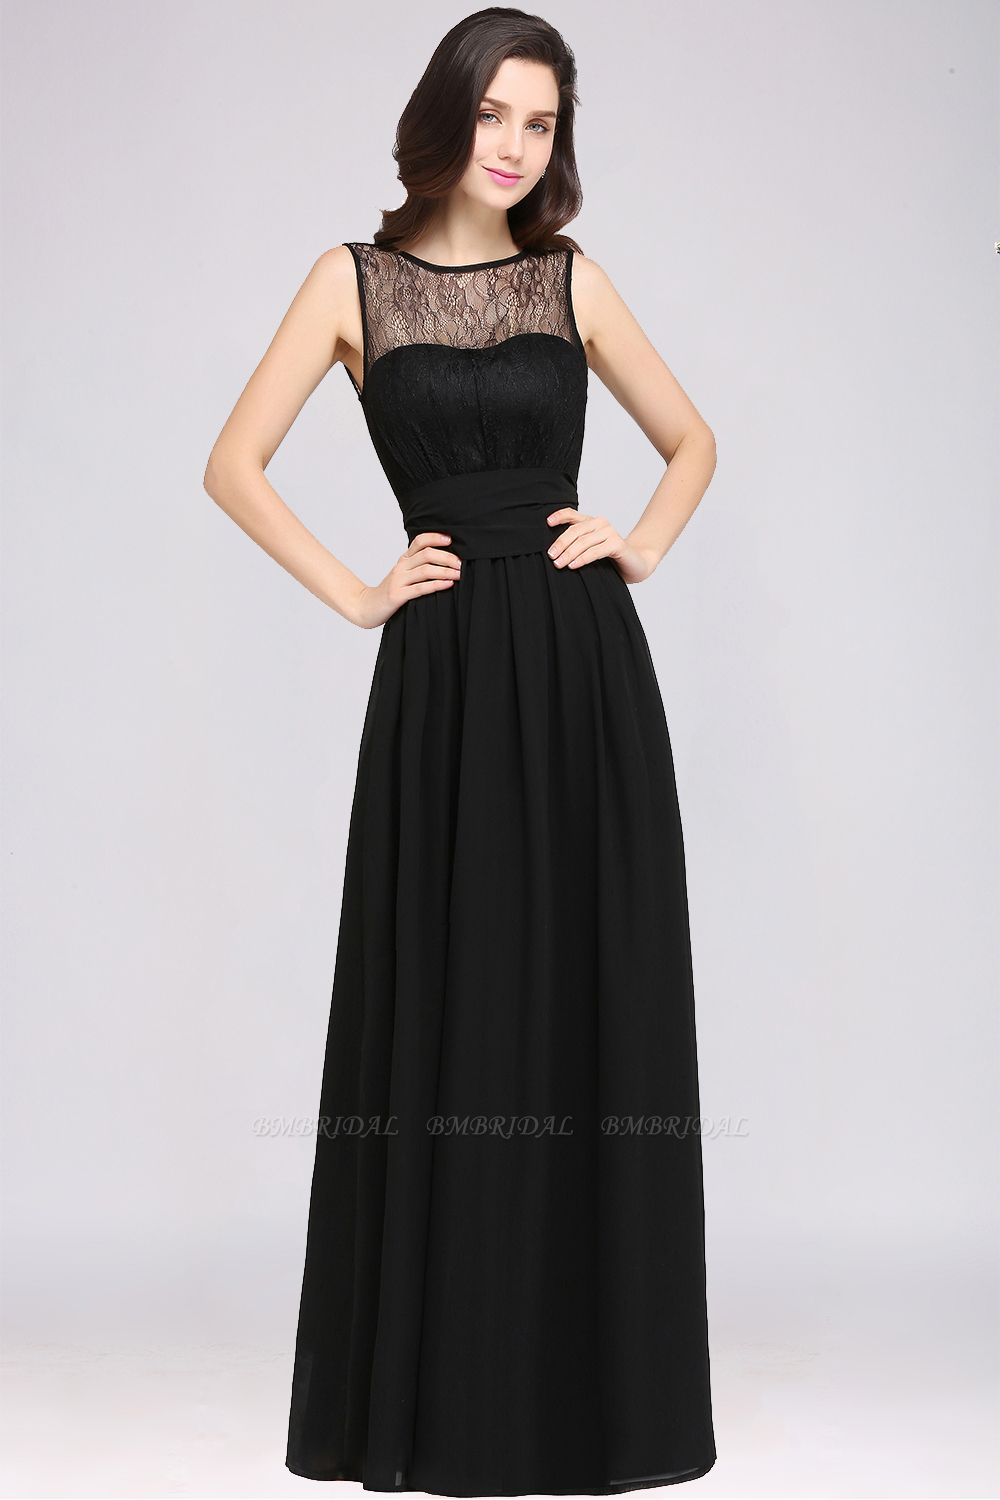 Sexy Black Chiffon Lace Long Cheap Bridesmaid Dresses In Stock